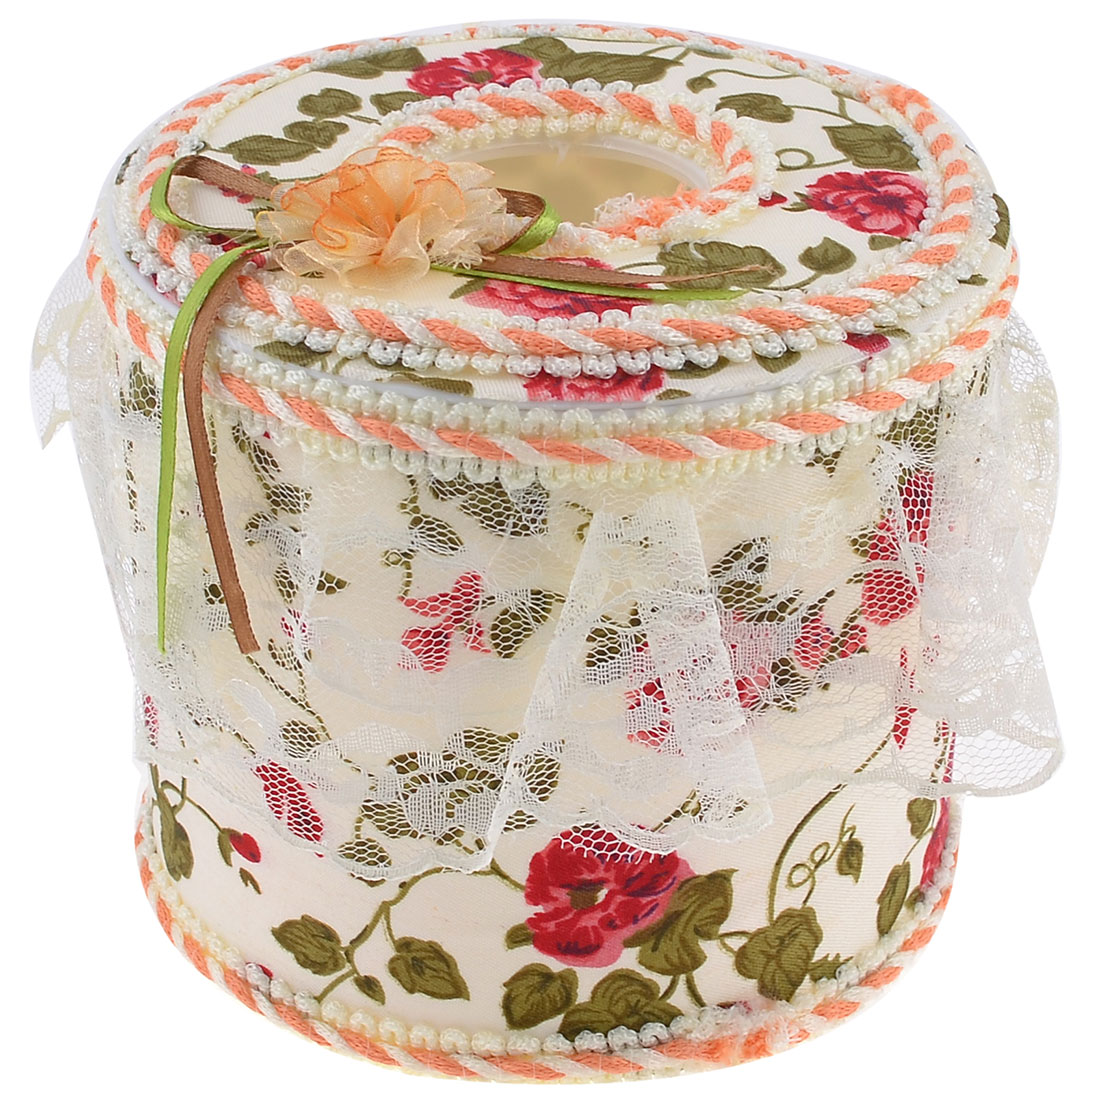 Ribbon Flower Detailing Top Beige Fabric Wrapped Round Tissue Box Container